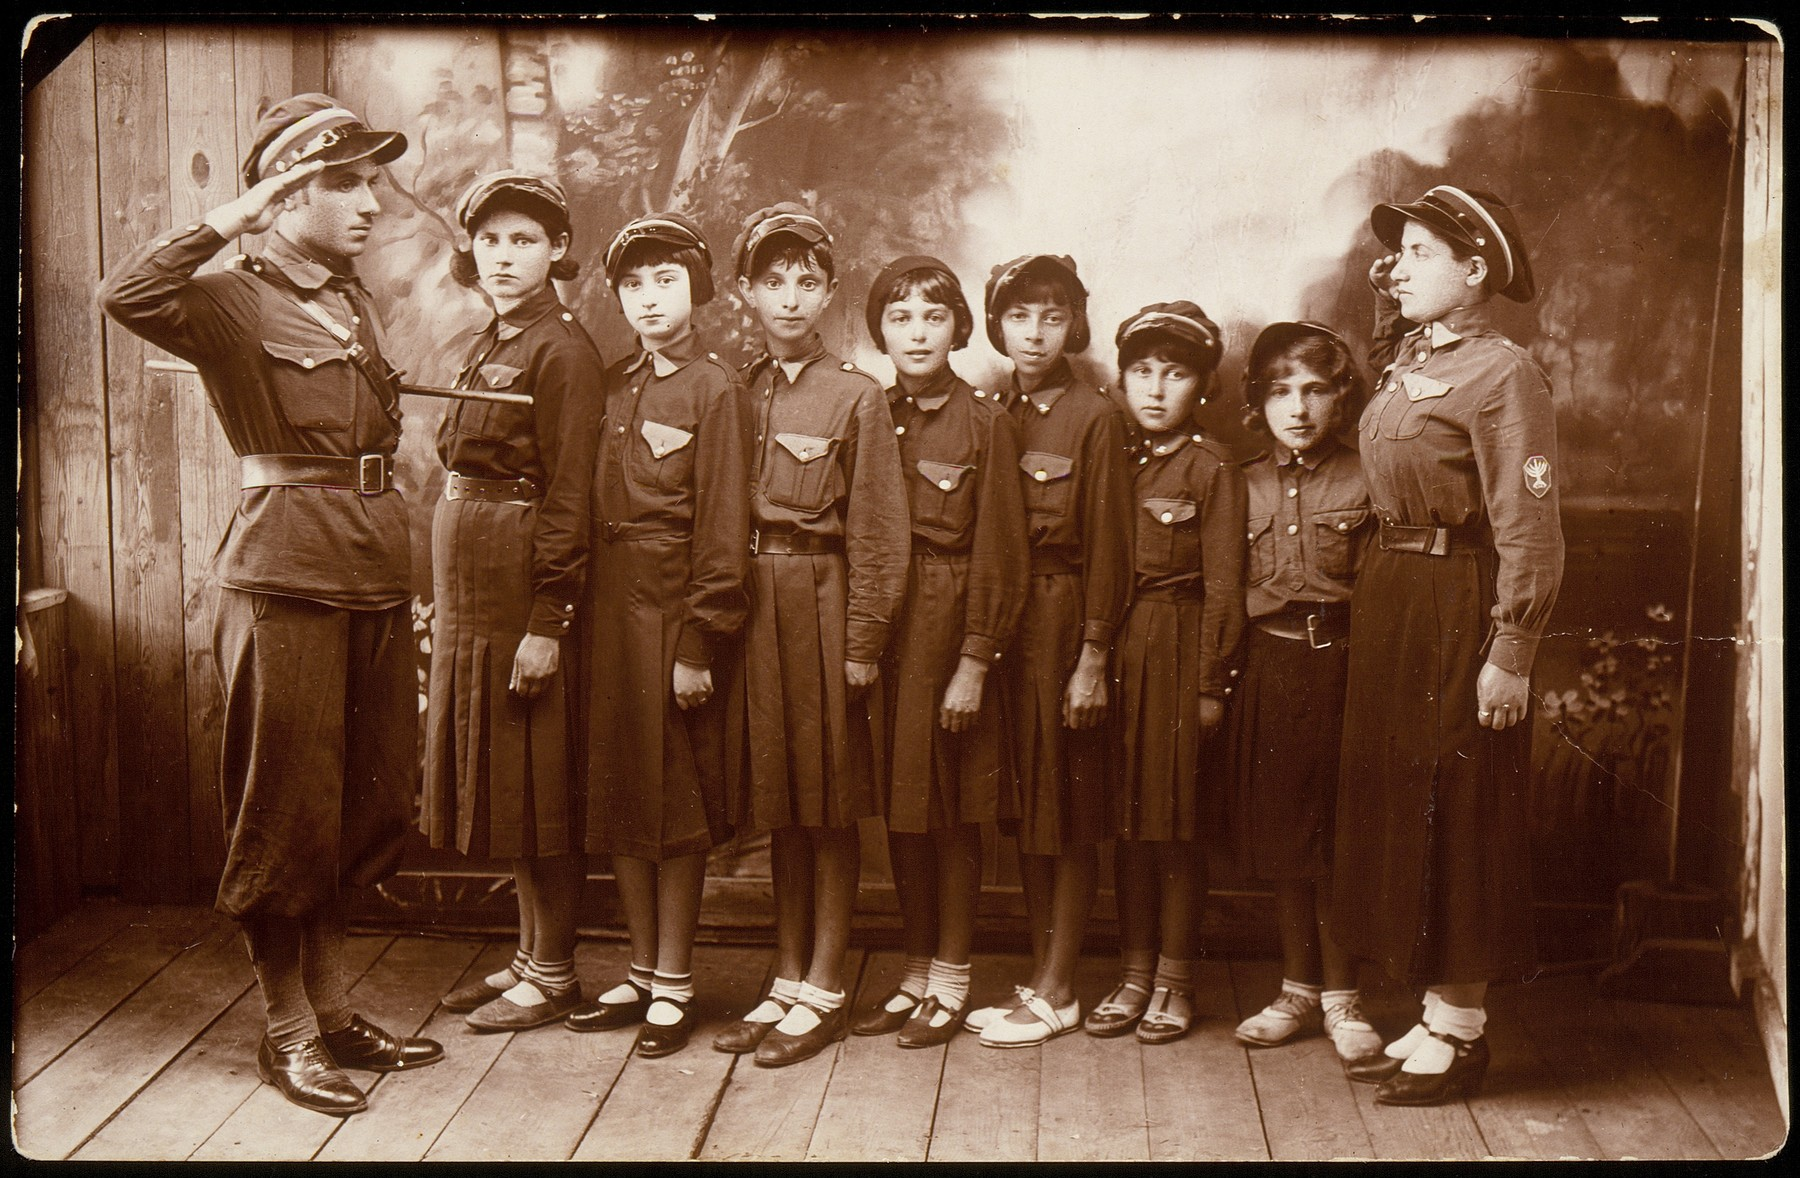 Members of a girls chapter of the Betar revisionist Zionist youth movement in Eisiskes, pose with their leaders.  Pictured from right to left are: Shifra Berczanski, Hanna Sczczuczynski, ? Koppelman, Matke Shlepak, ? Portnoy, unknown, Sarah Tatarski, ? Schwartz and Zvi Hirshke Schwartz.  Shifra Berczanski immigrated to Palestine before the war;  Zvi Hirshke Schwartz survived the war as a partisan; Hannah Sczczuczynski was killed by a member of the Polish Home Army, who had been the caretaker of her Polish school.  The others were killed by the Germans during the September 1941 mass shooting action in Eisiskes.